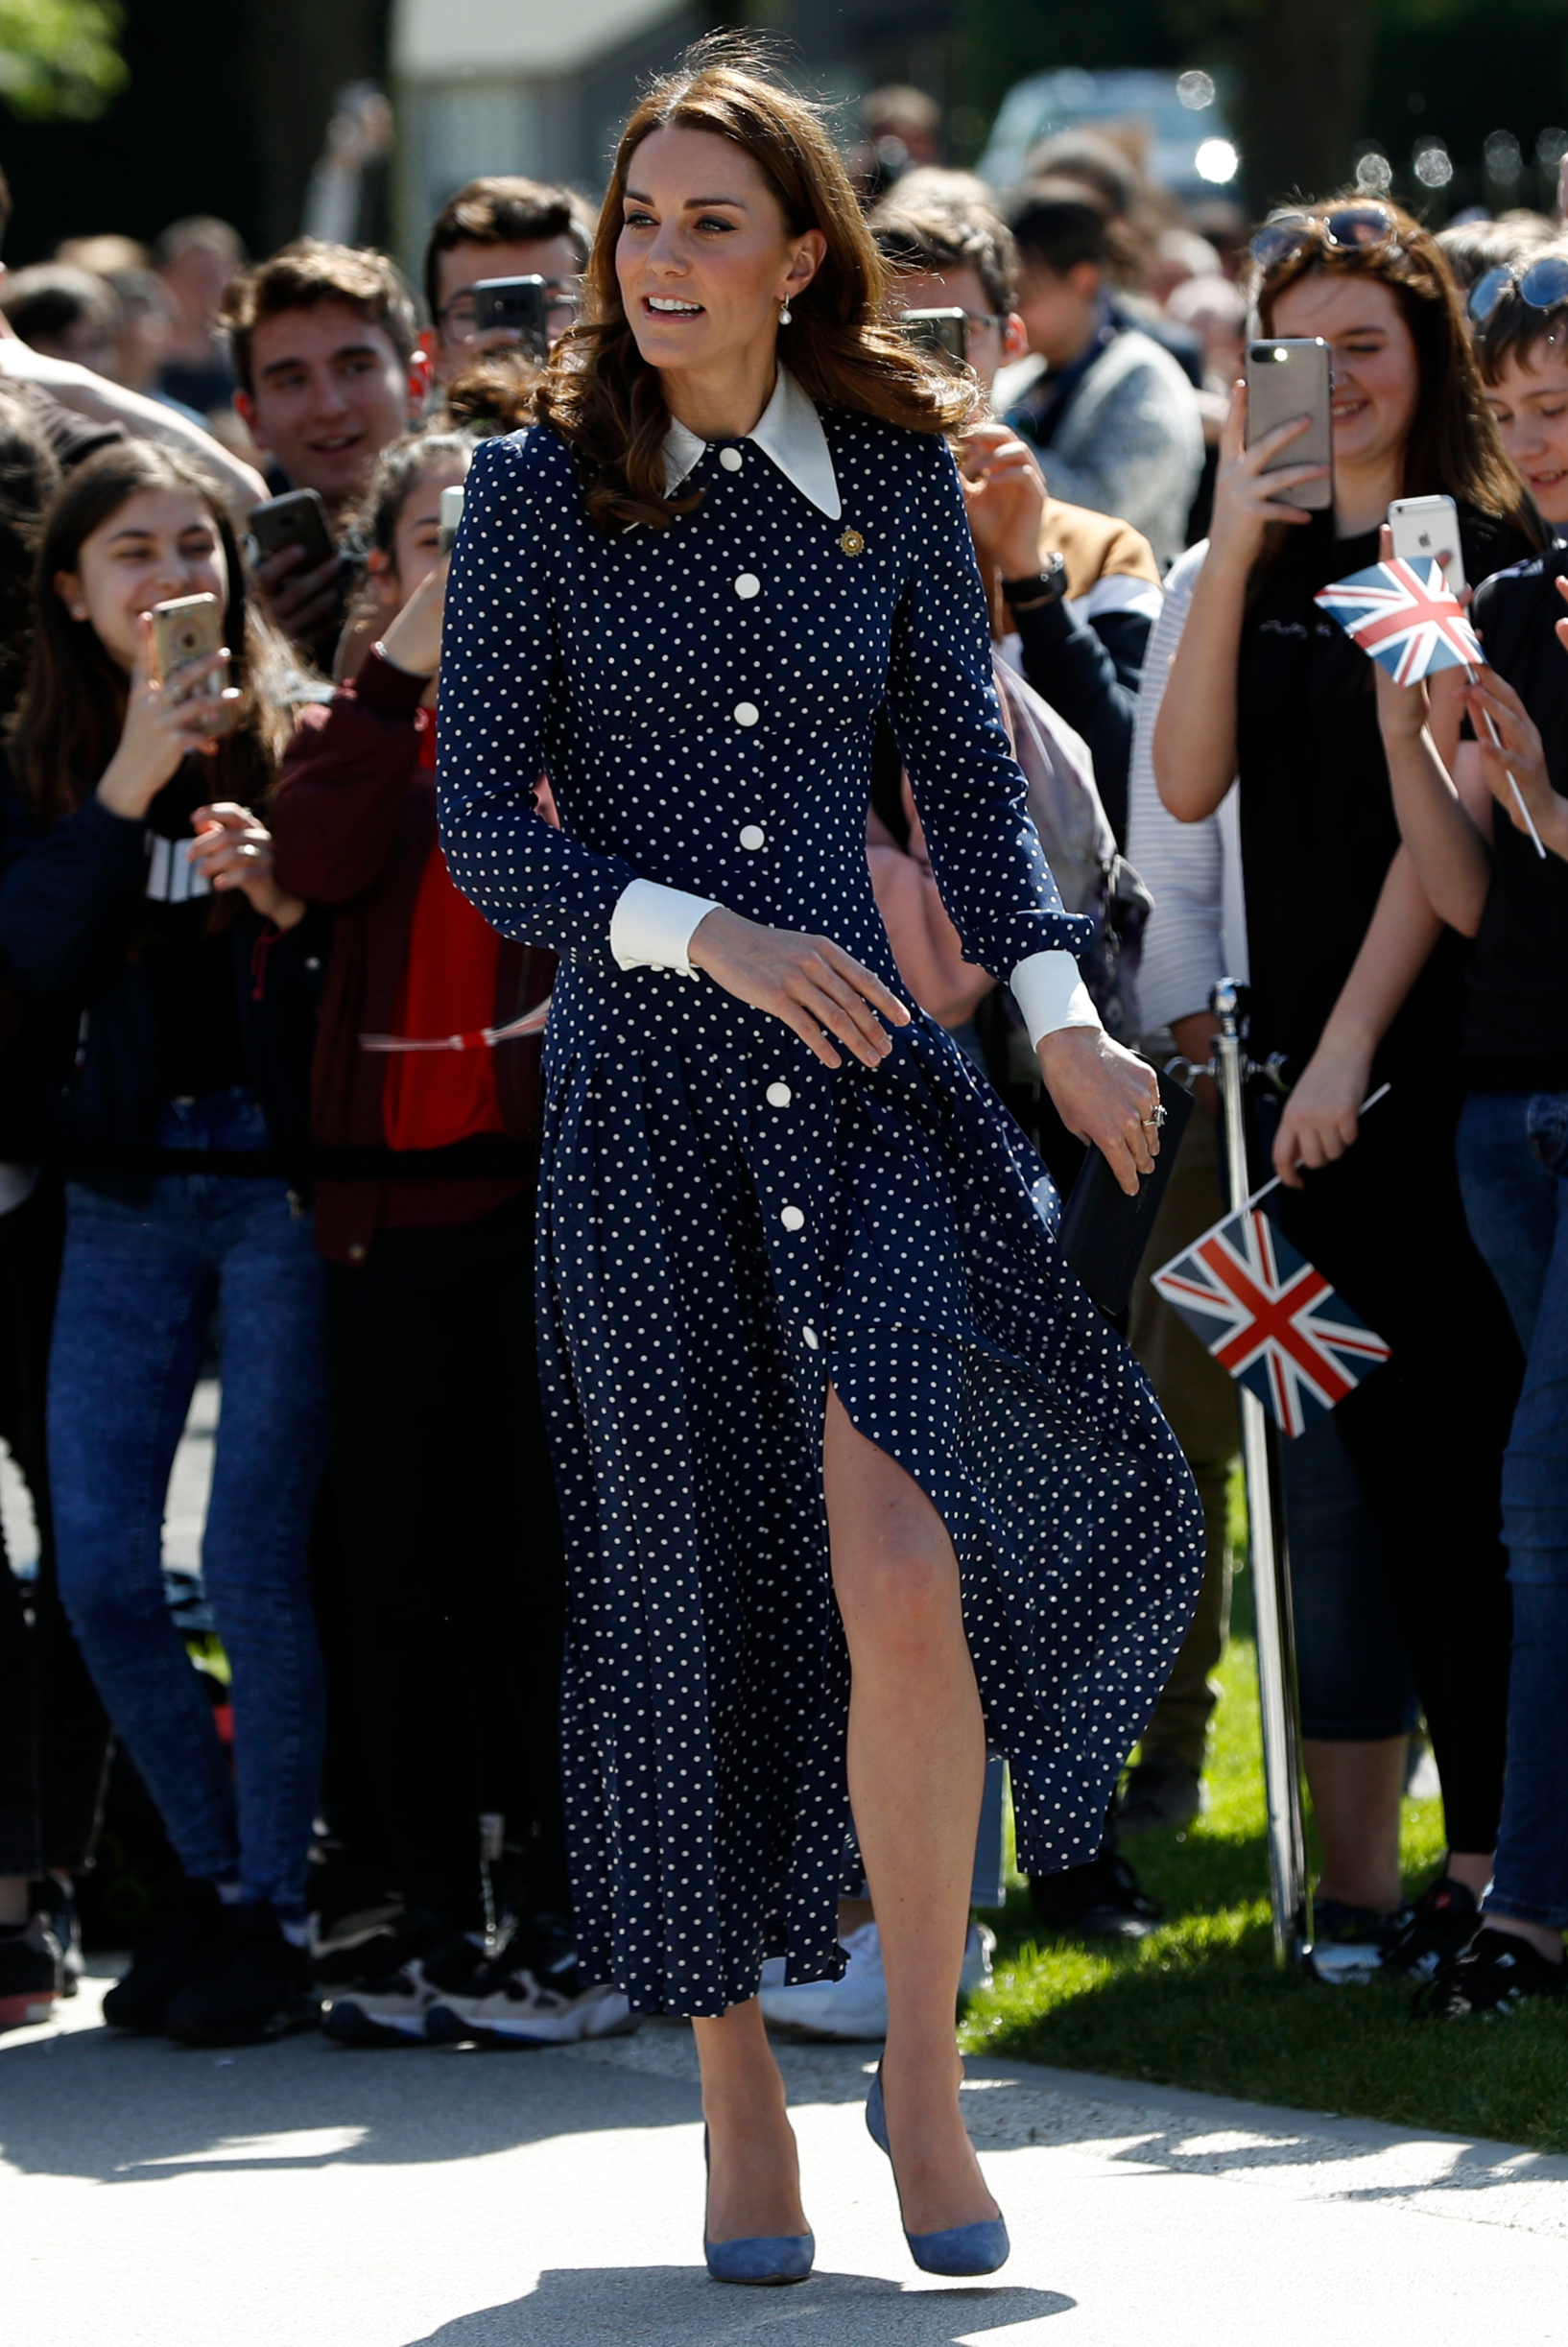 BLETCHLEY, ENGLAND - MAY 14: Catherine, Duchess of Cambridge, arrives to visit the D-Day exhibition at Bletchley Park on May 14, 2019 in Bletchley, England. The D-Day exhibition marks the 75th anniversary of the D-Day landings. (Photo by Darren Staples/Getty Images)